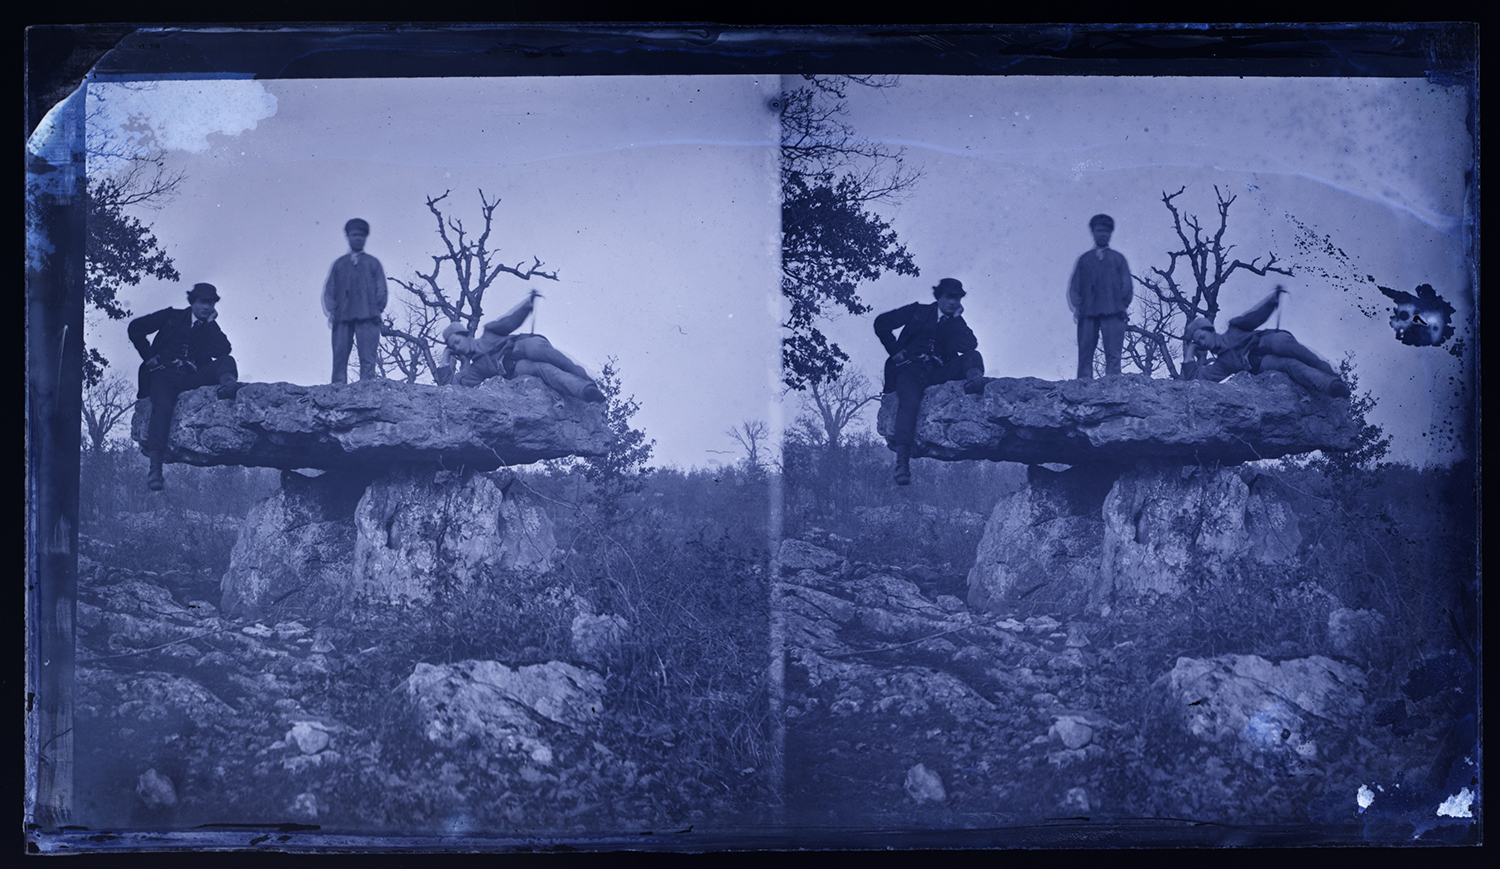 archival photo of two men standing on stone structure